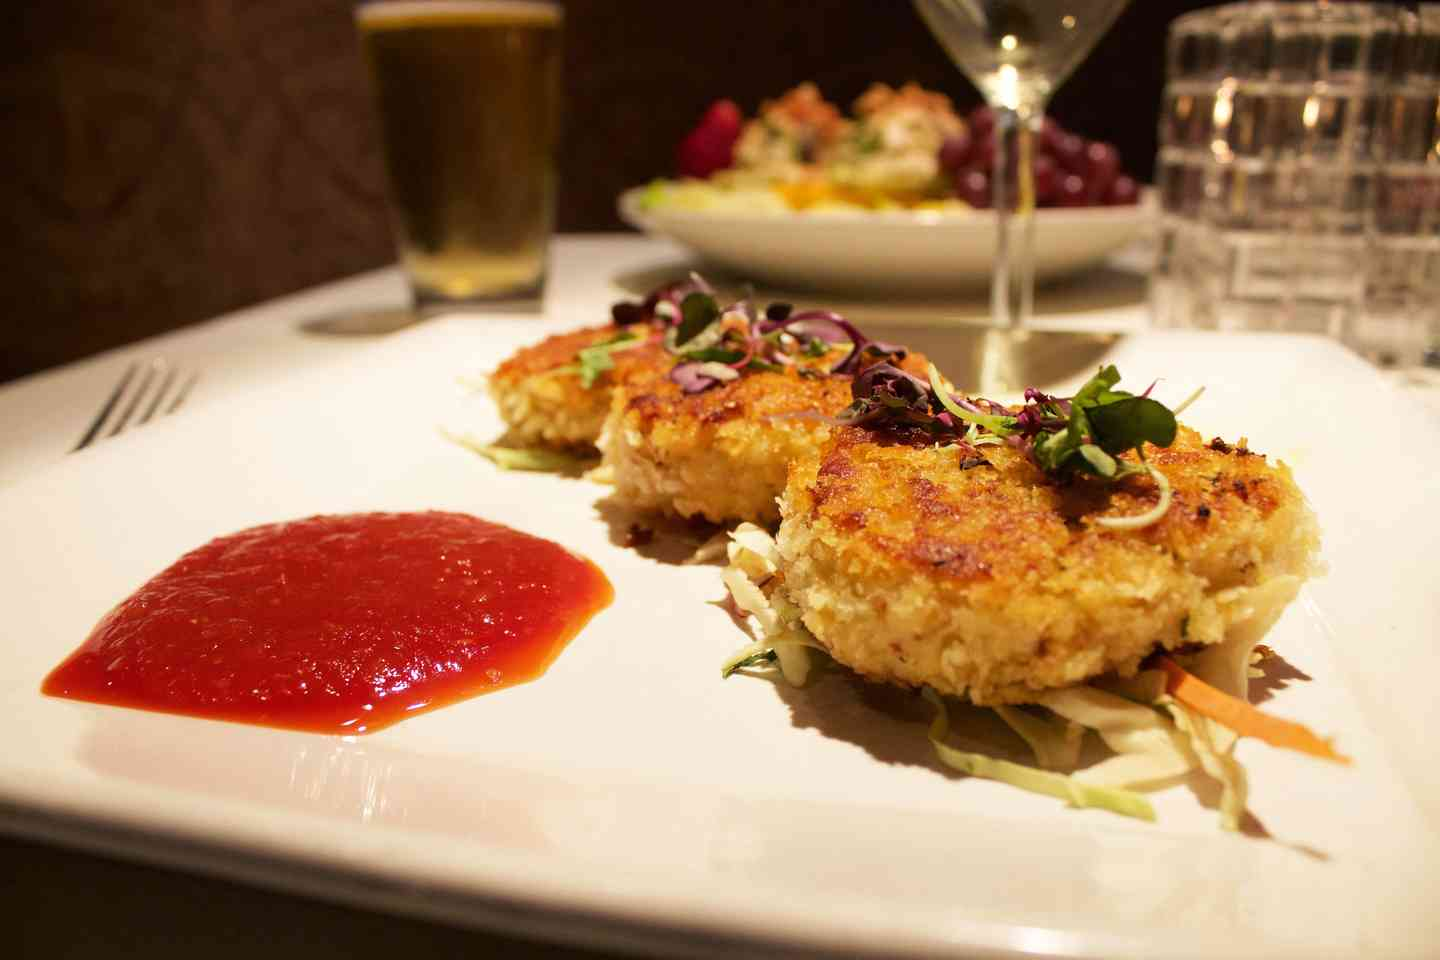 Crab & Scallop Cakes